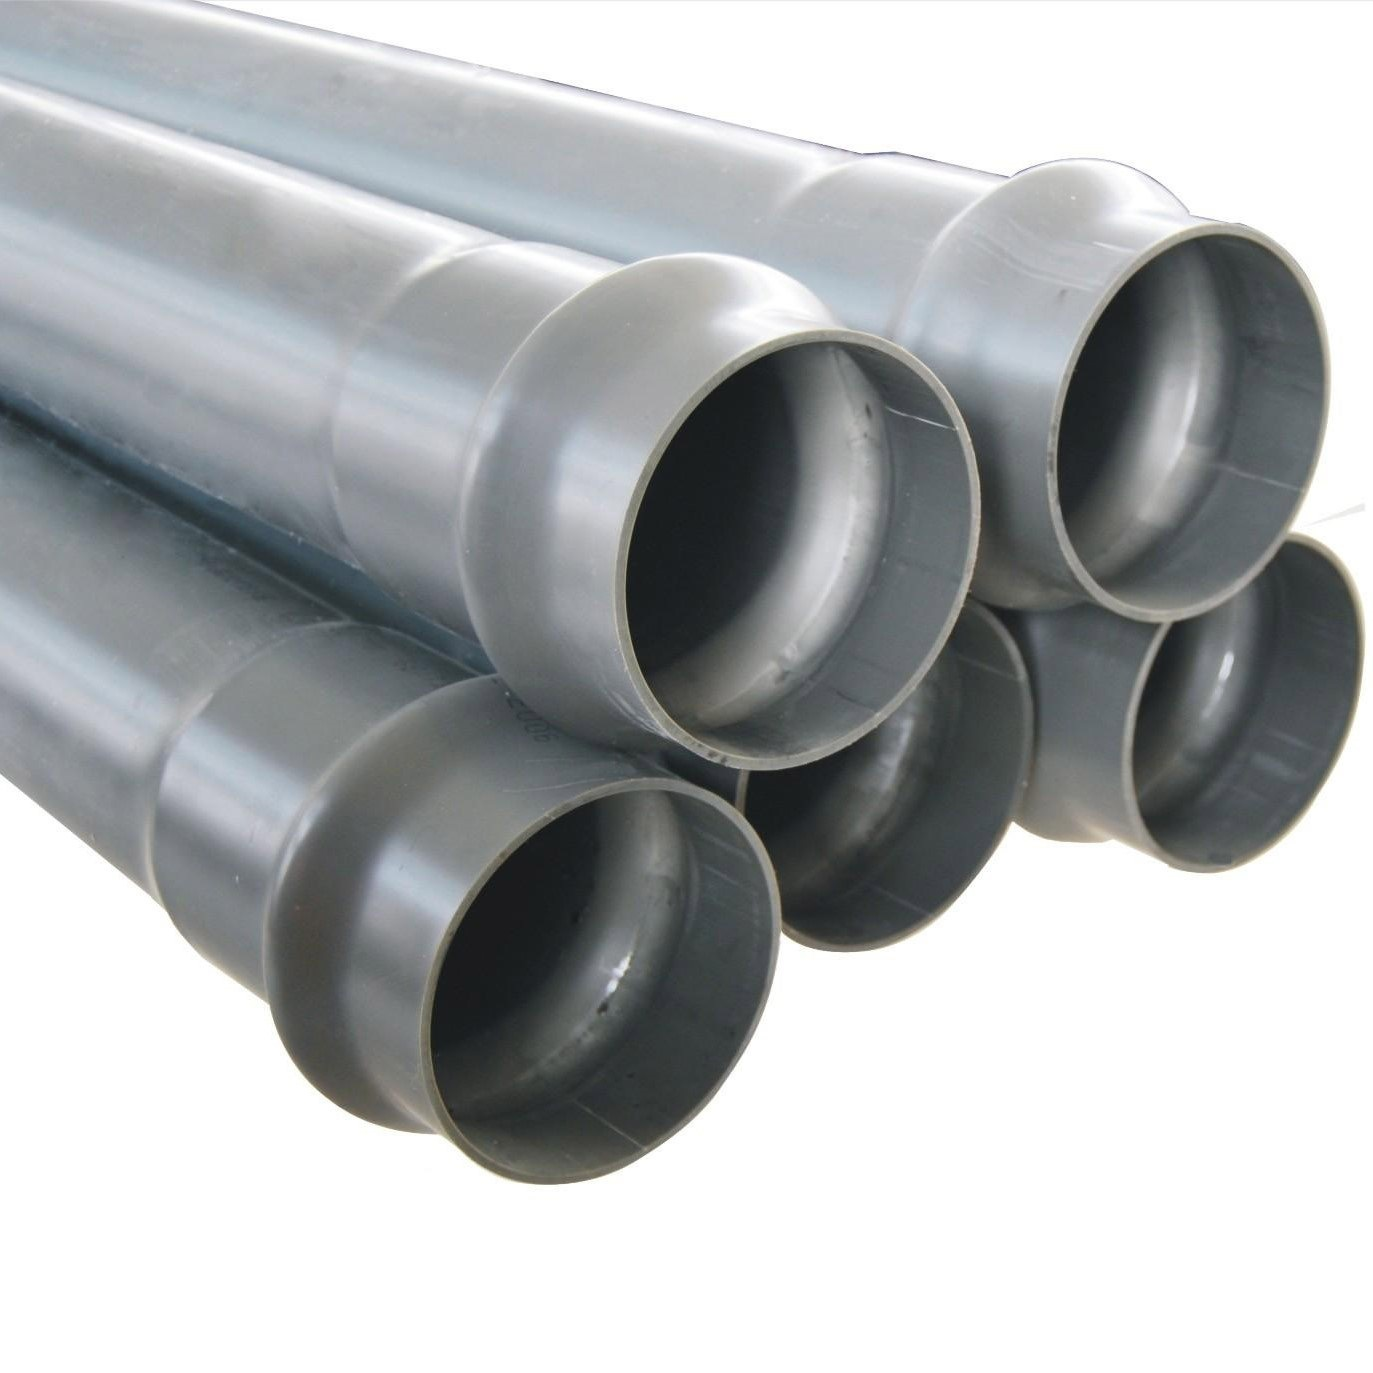 China Water Pipe, Water Pipe Wholesale, Manufacturers, Price |  Made-in-China com